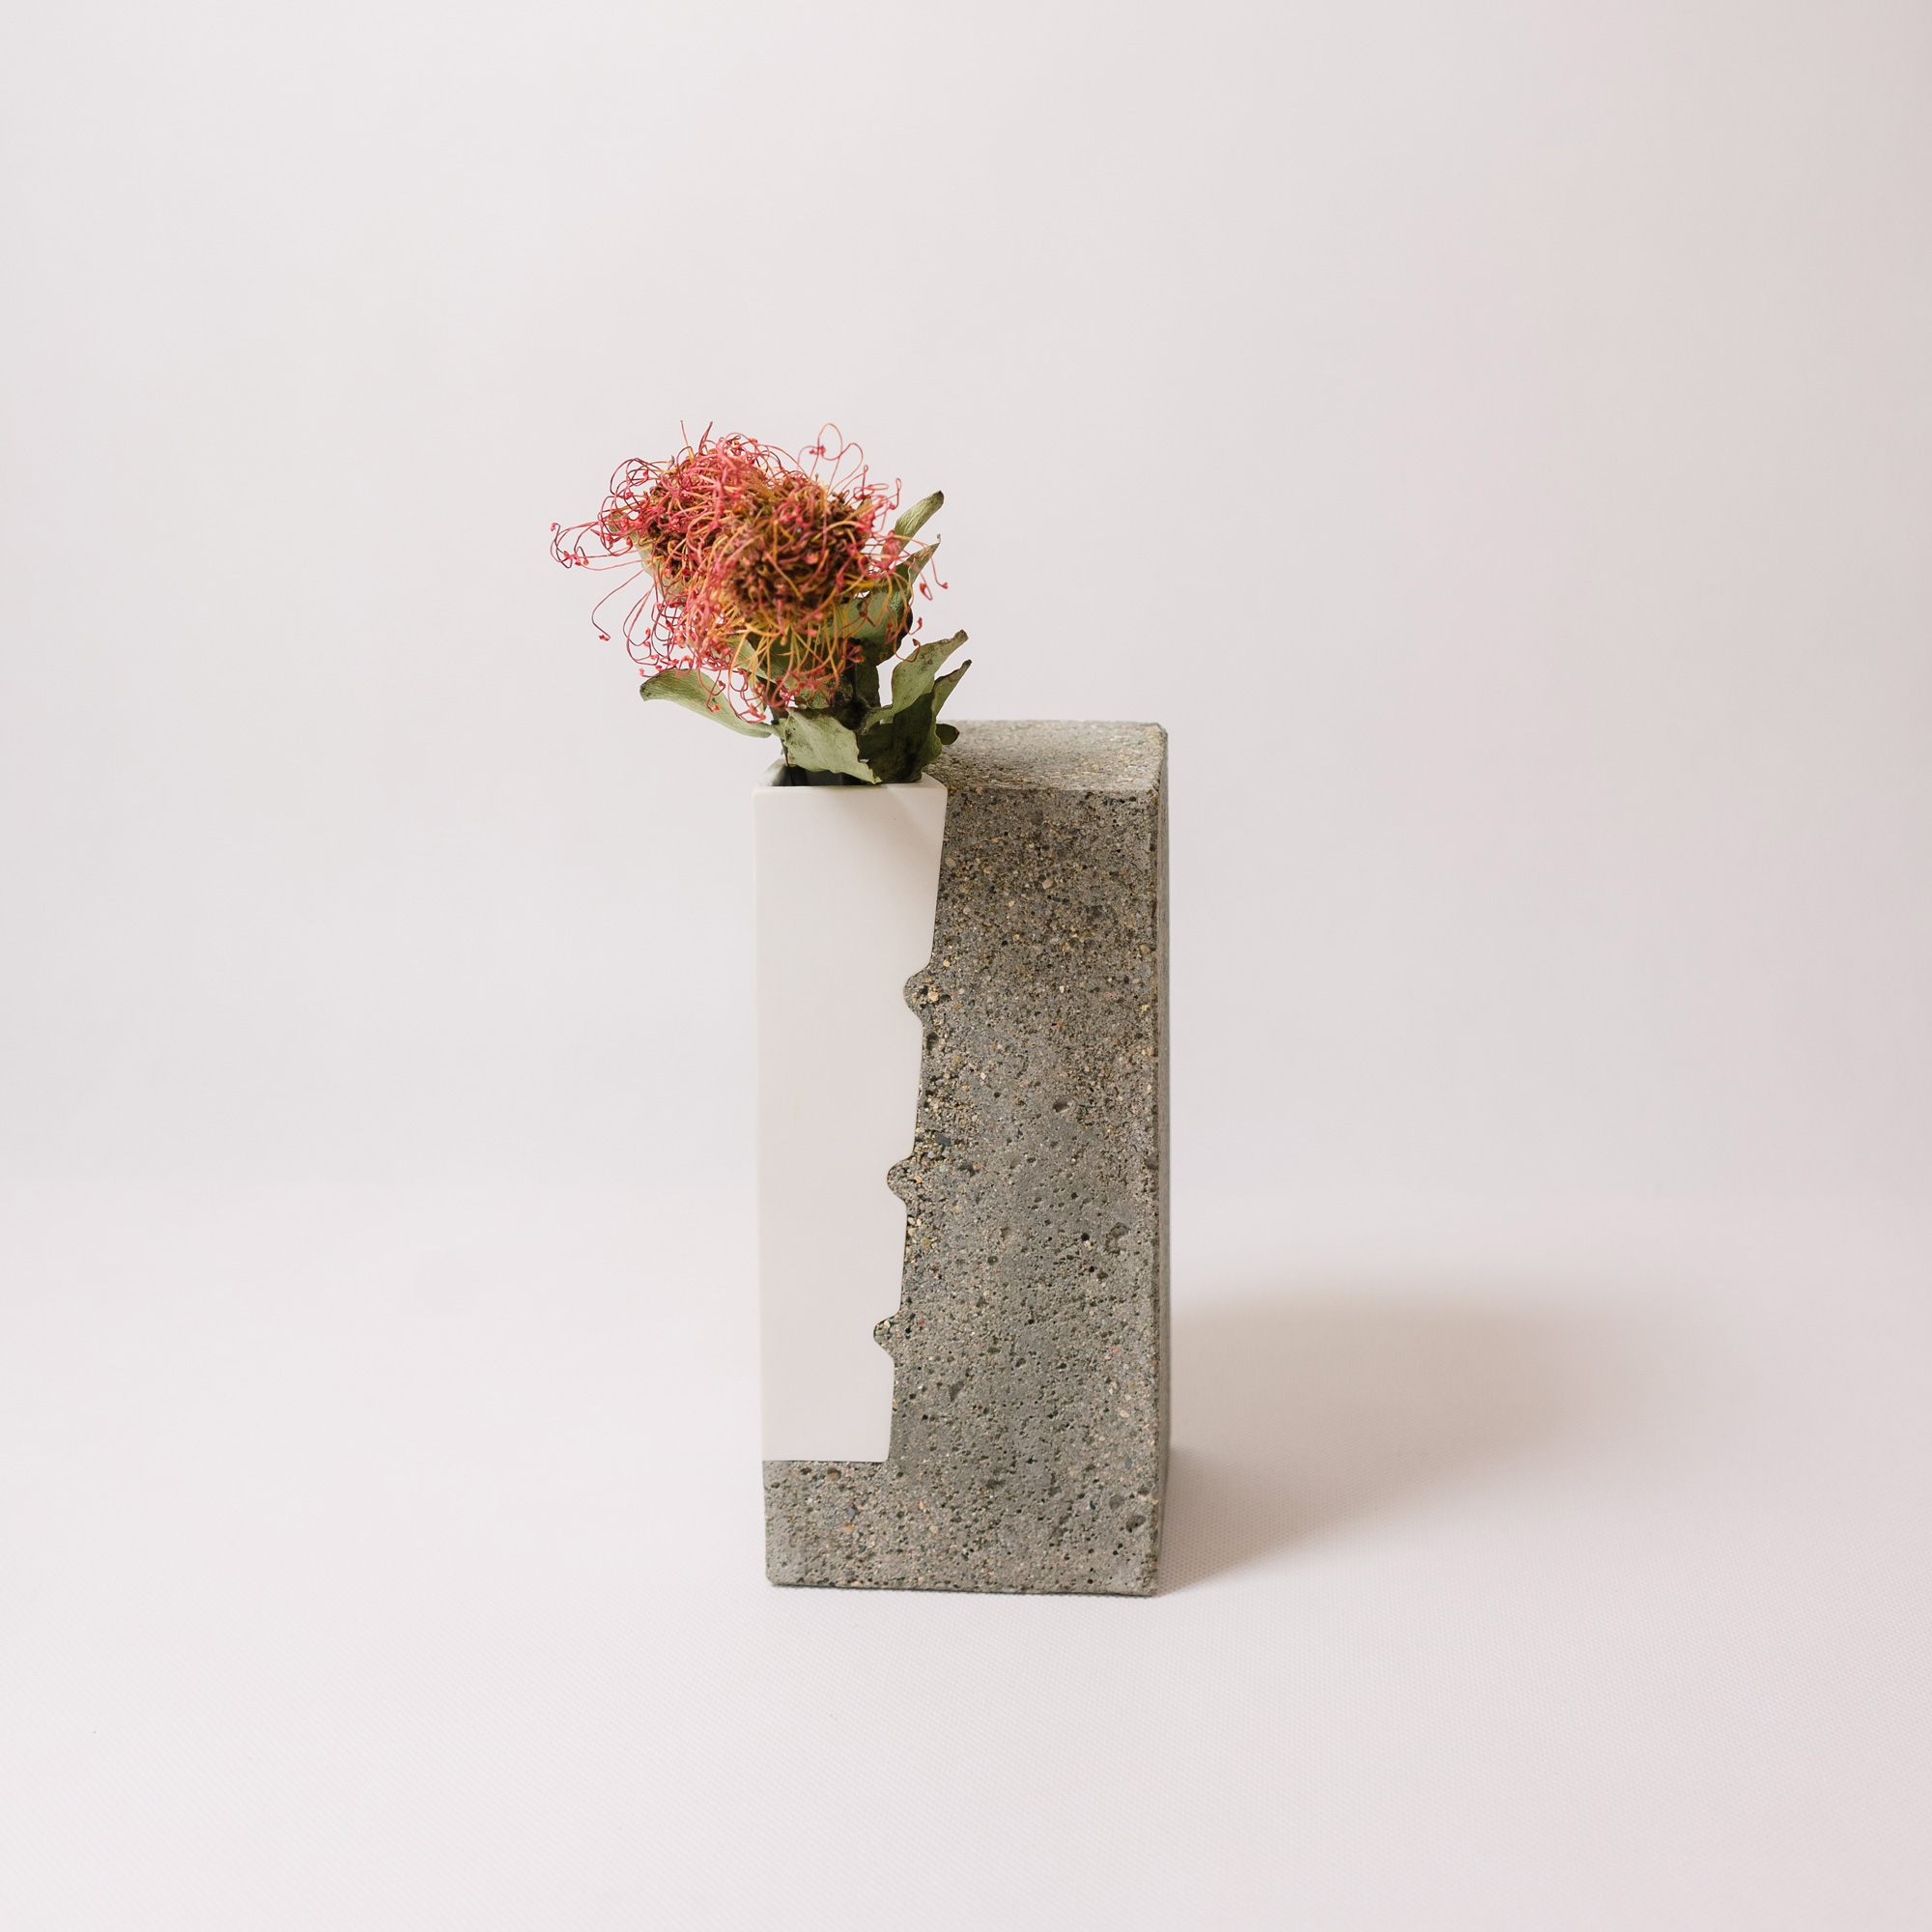 White porcelain vase encapsulated in concrete by Vobouch designers with red dry flowers 03